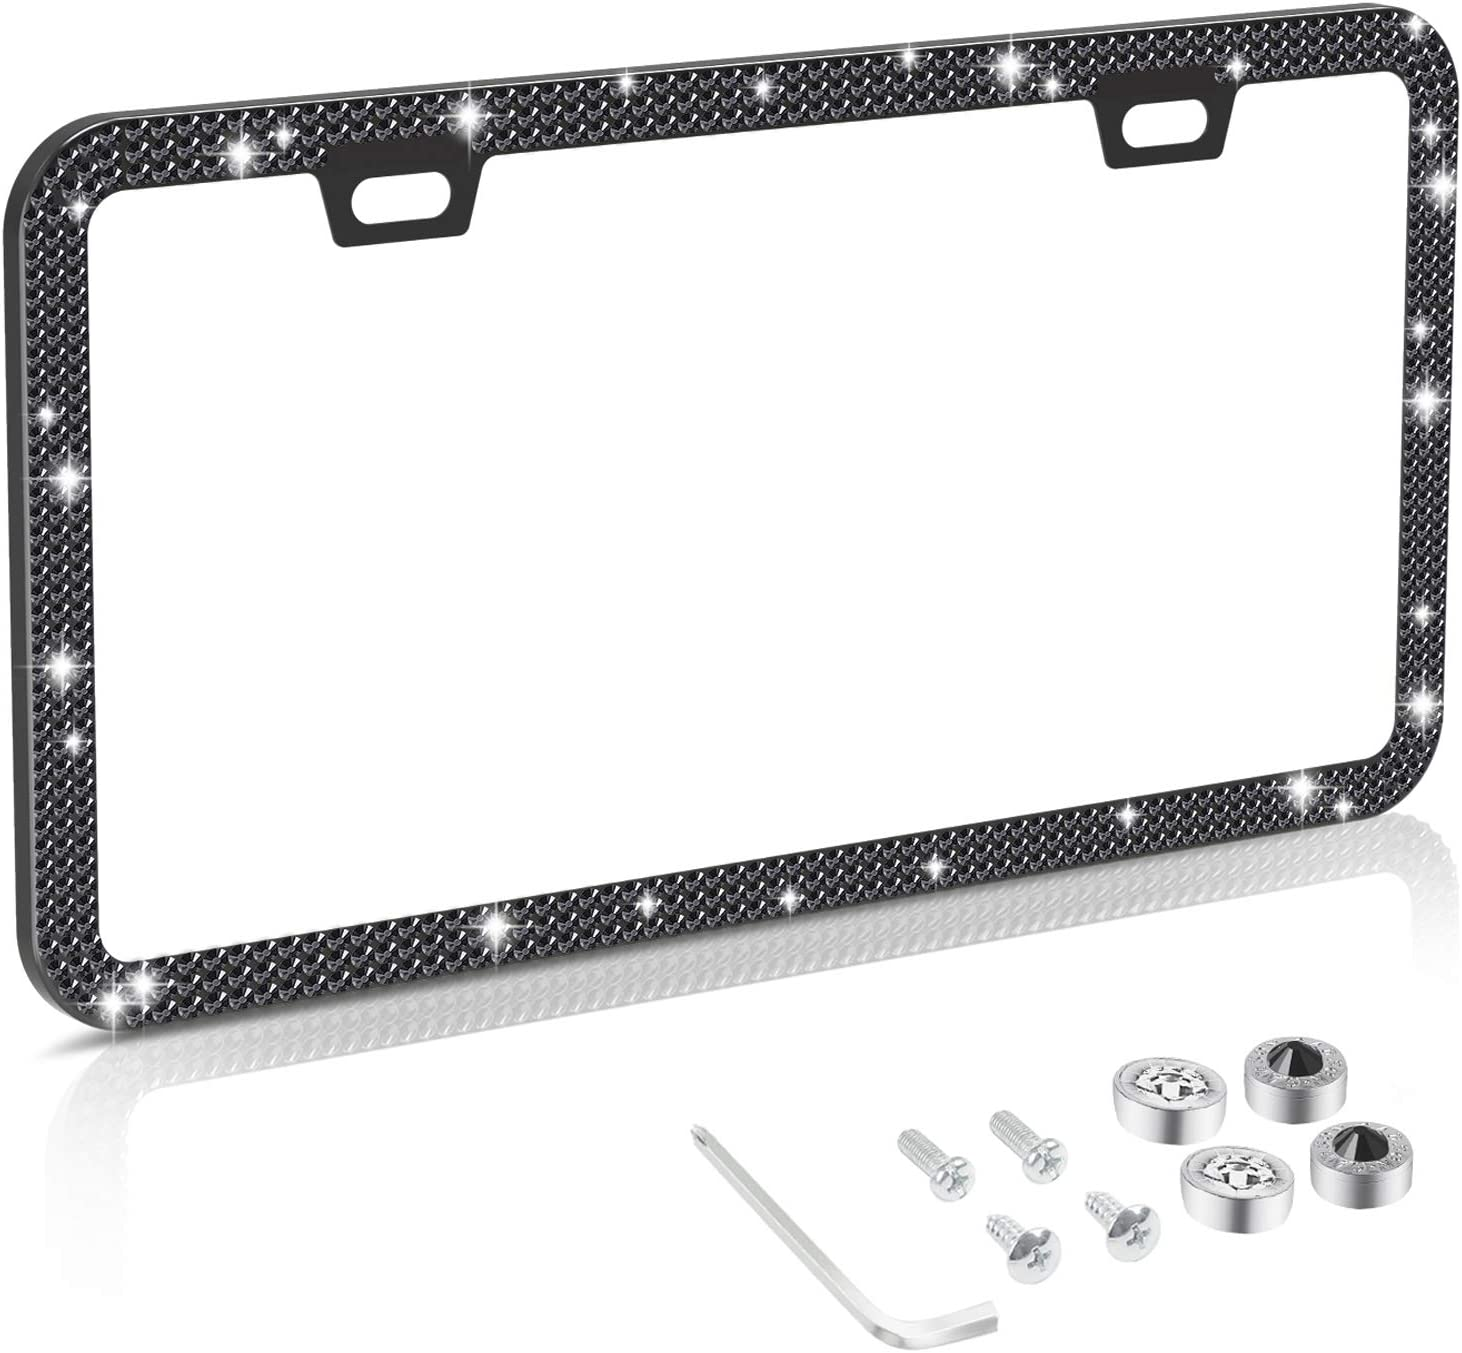 Stainless Steel Thin Border Black Diamond License Plate Frames with Anti Theft Screw Caps ZHSX Bling Rhinestone License Plate Frame for Women